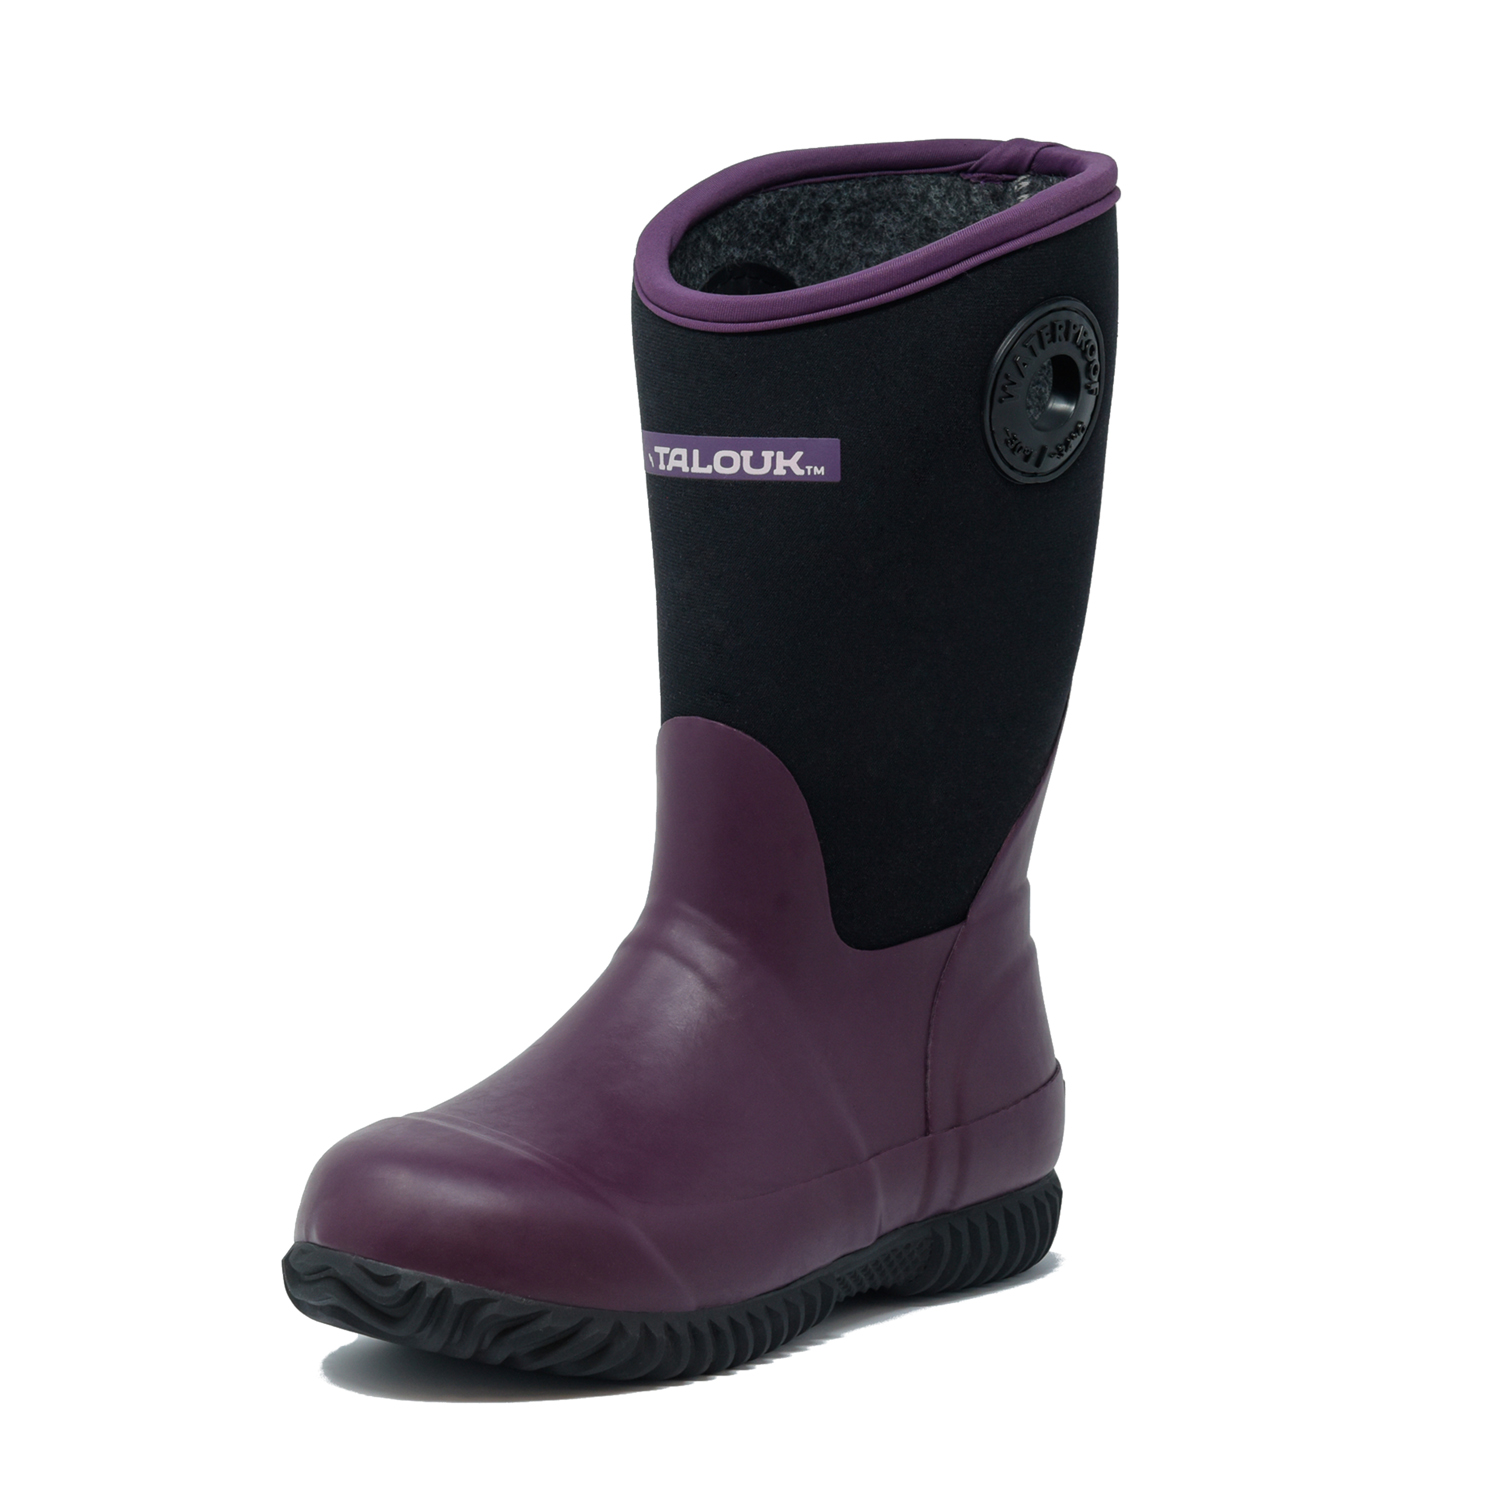 talouk outdoor purple eggplant insulated rubber waterproof rain boots for kids